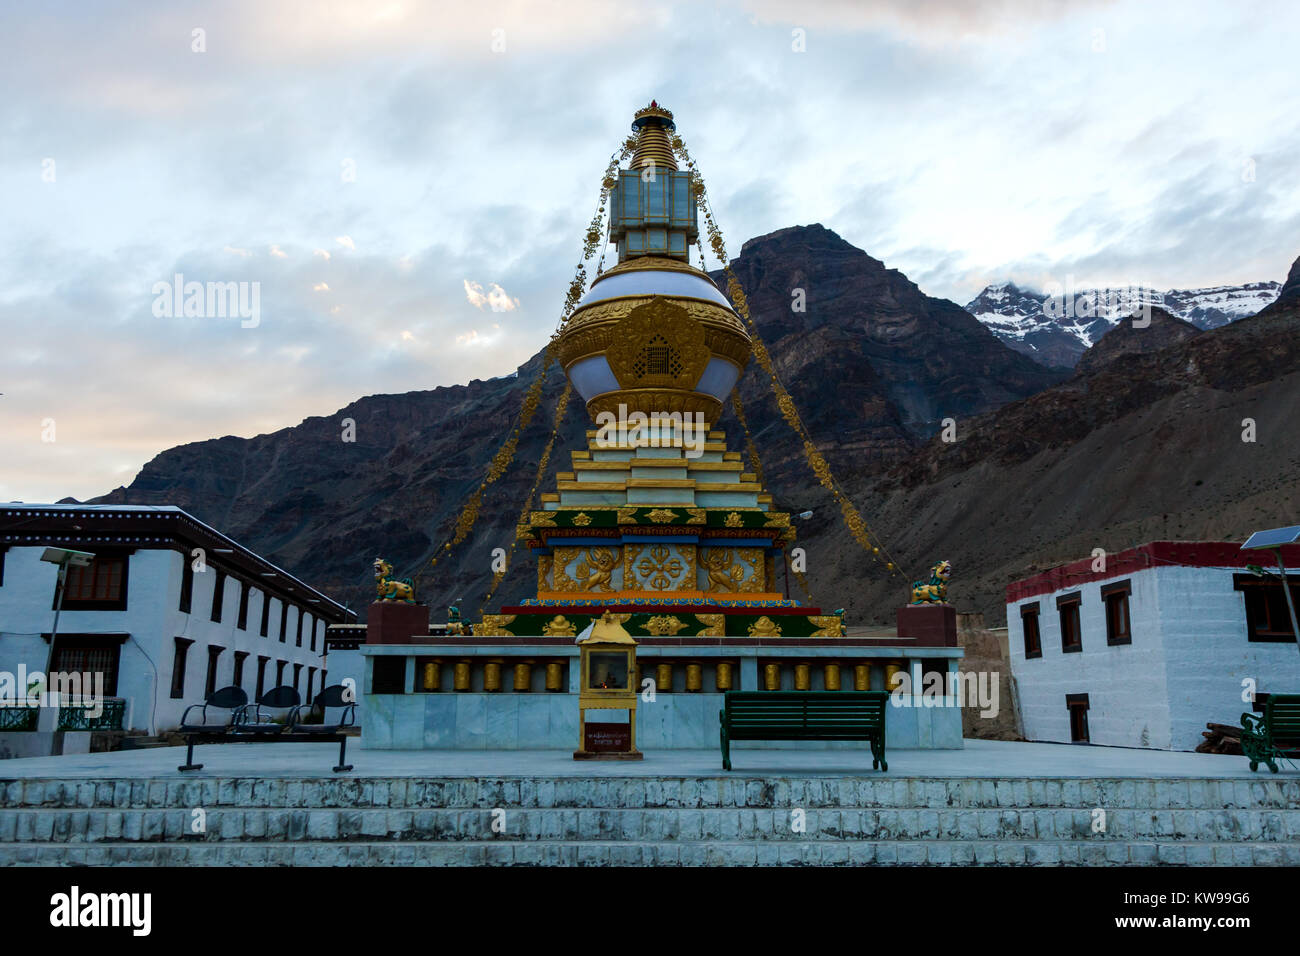 Tabo monastery and relics from the road trip of Spiti Valley, Himachal Pradesh, India. - Stock Image